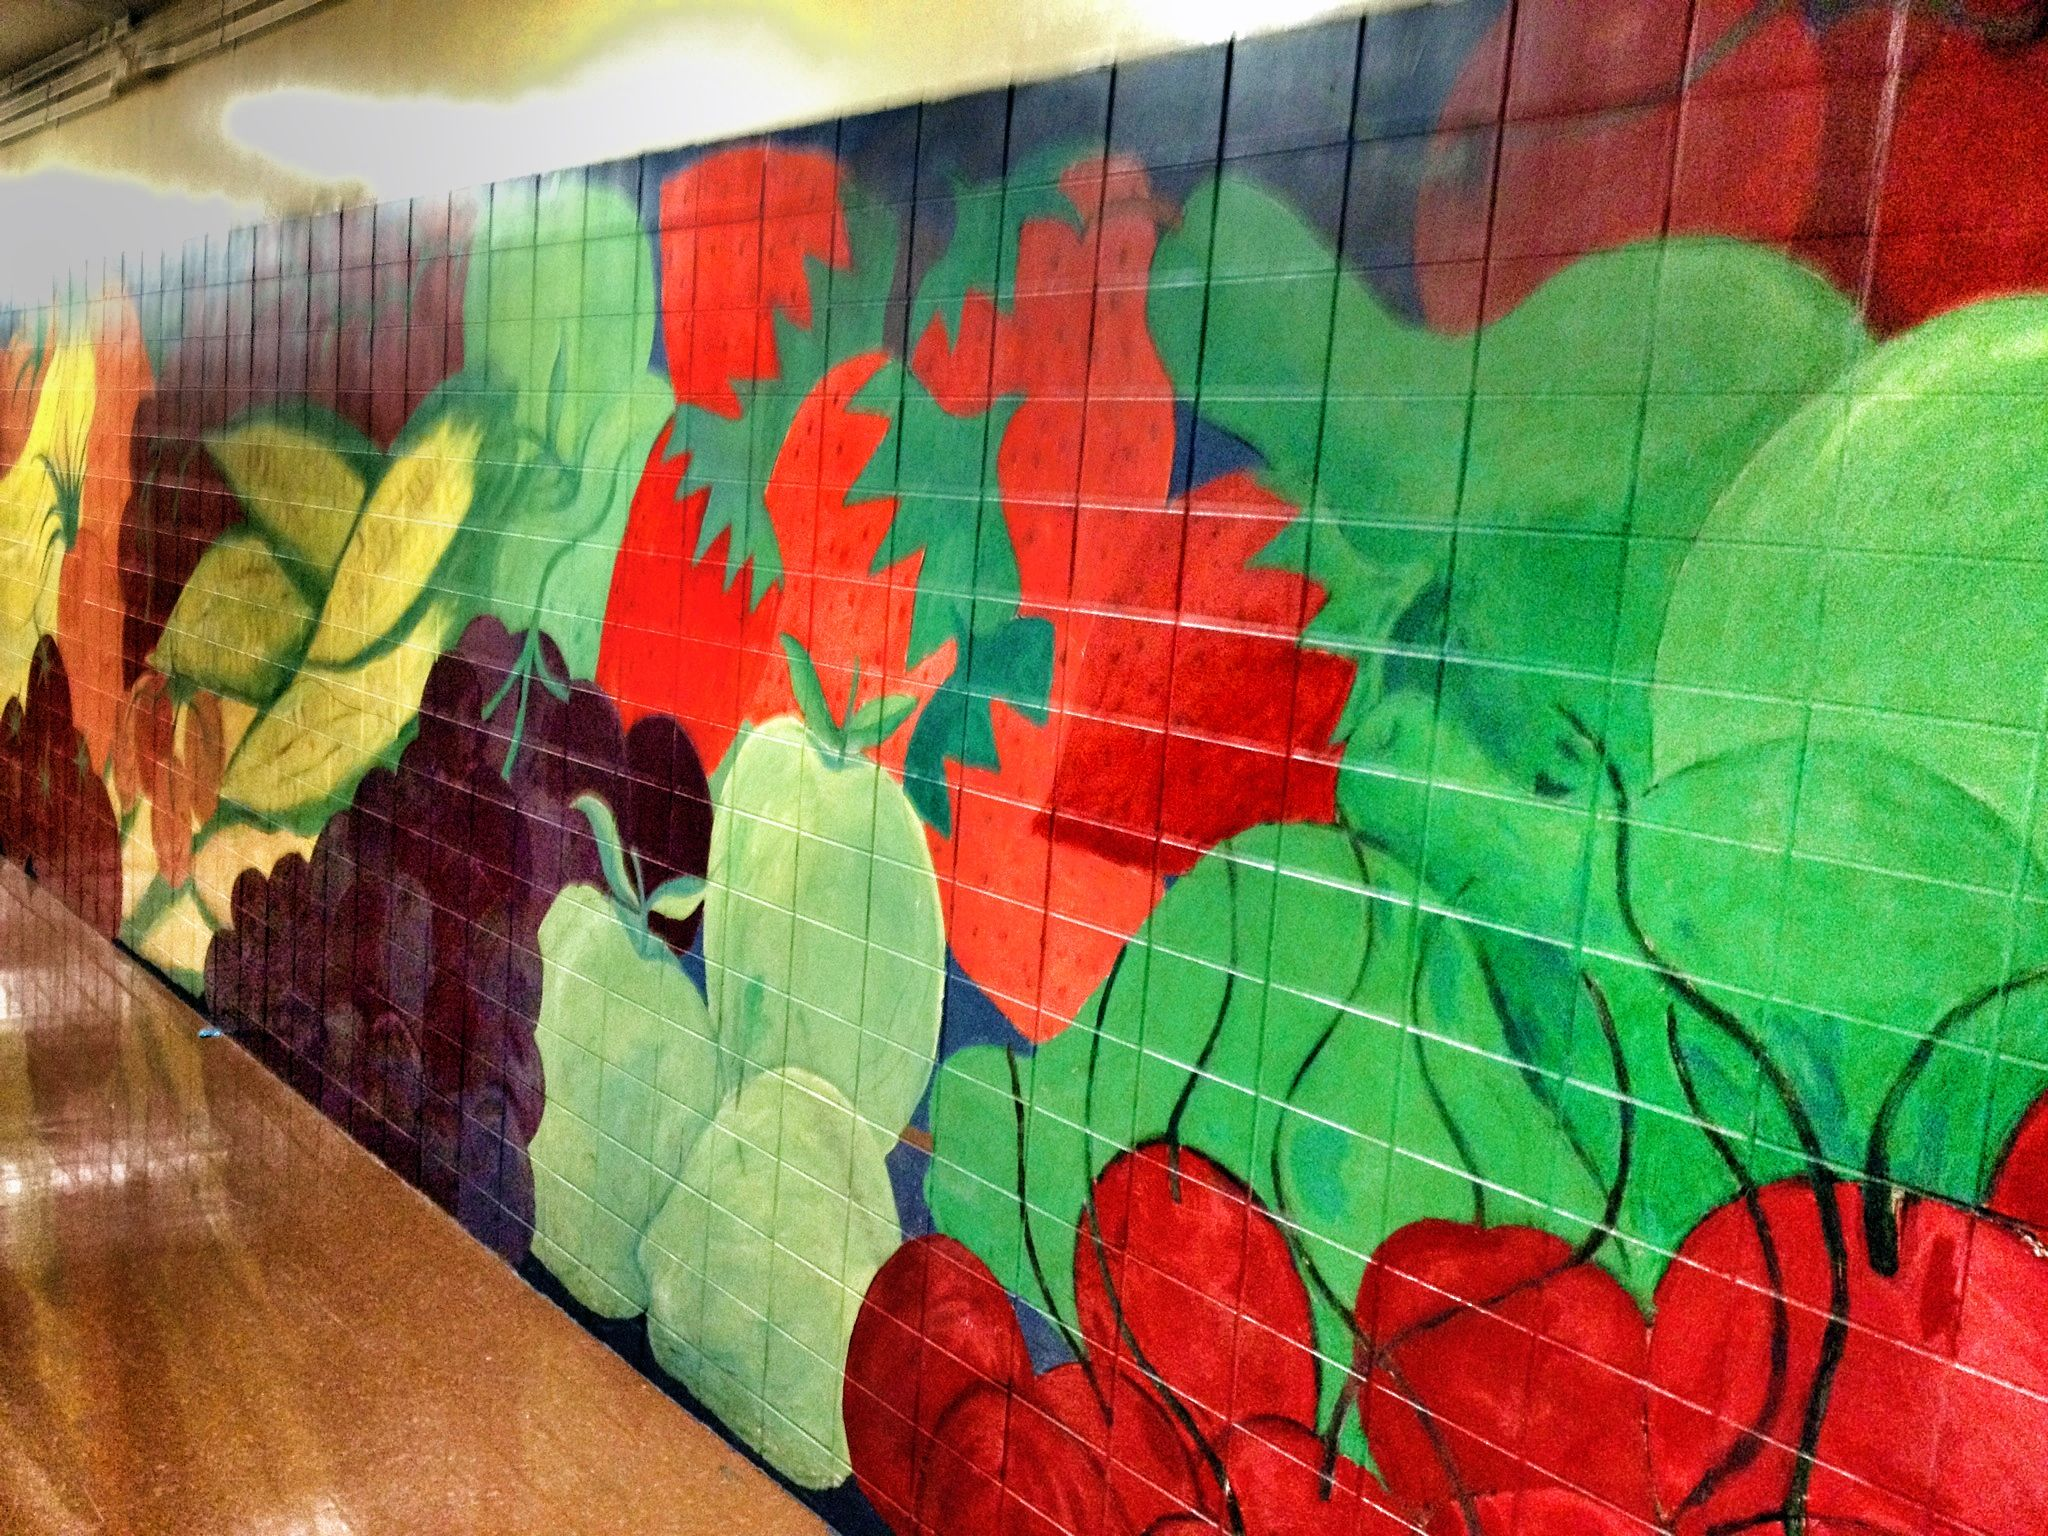 11.27.2012 I took a trip to PS 289, the school that shares our park. This awesome food mural lines the hallway leading to their lunchroom- I'd like to see something like this in our white-walled cafe. Color makes such a difference!